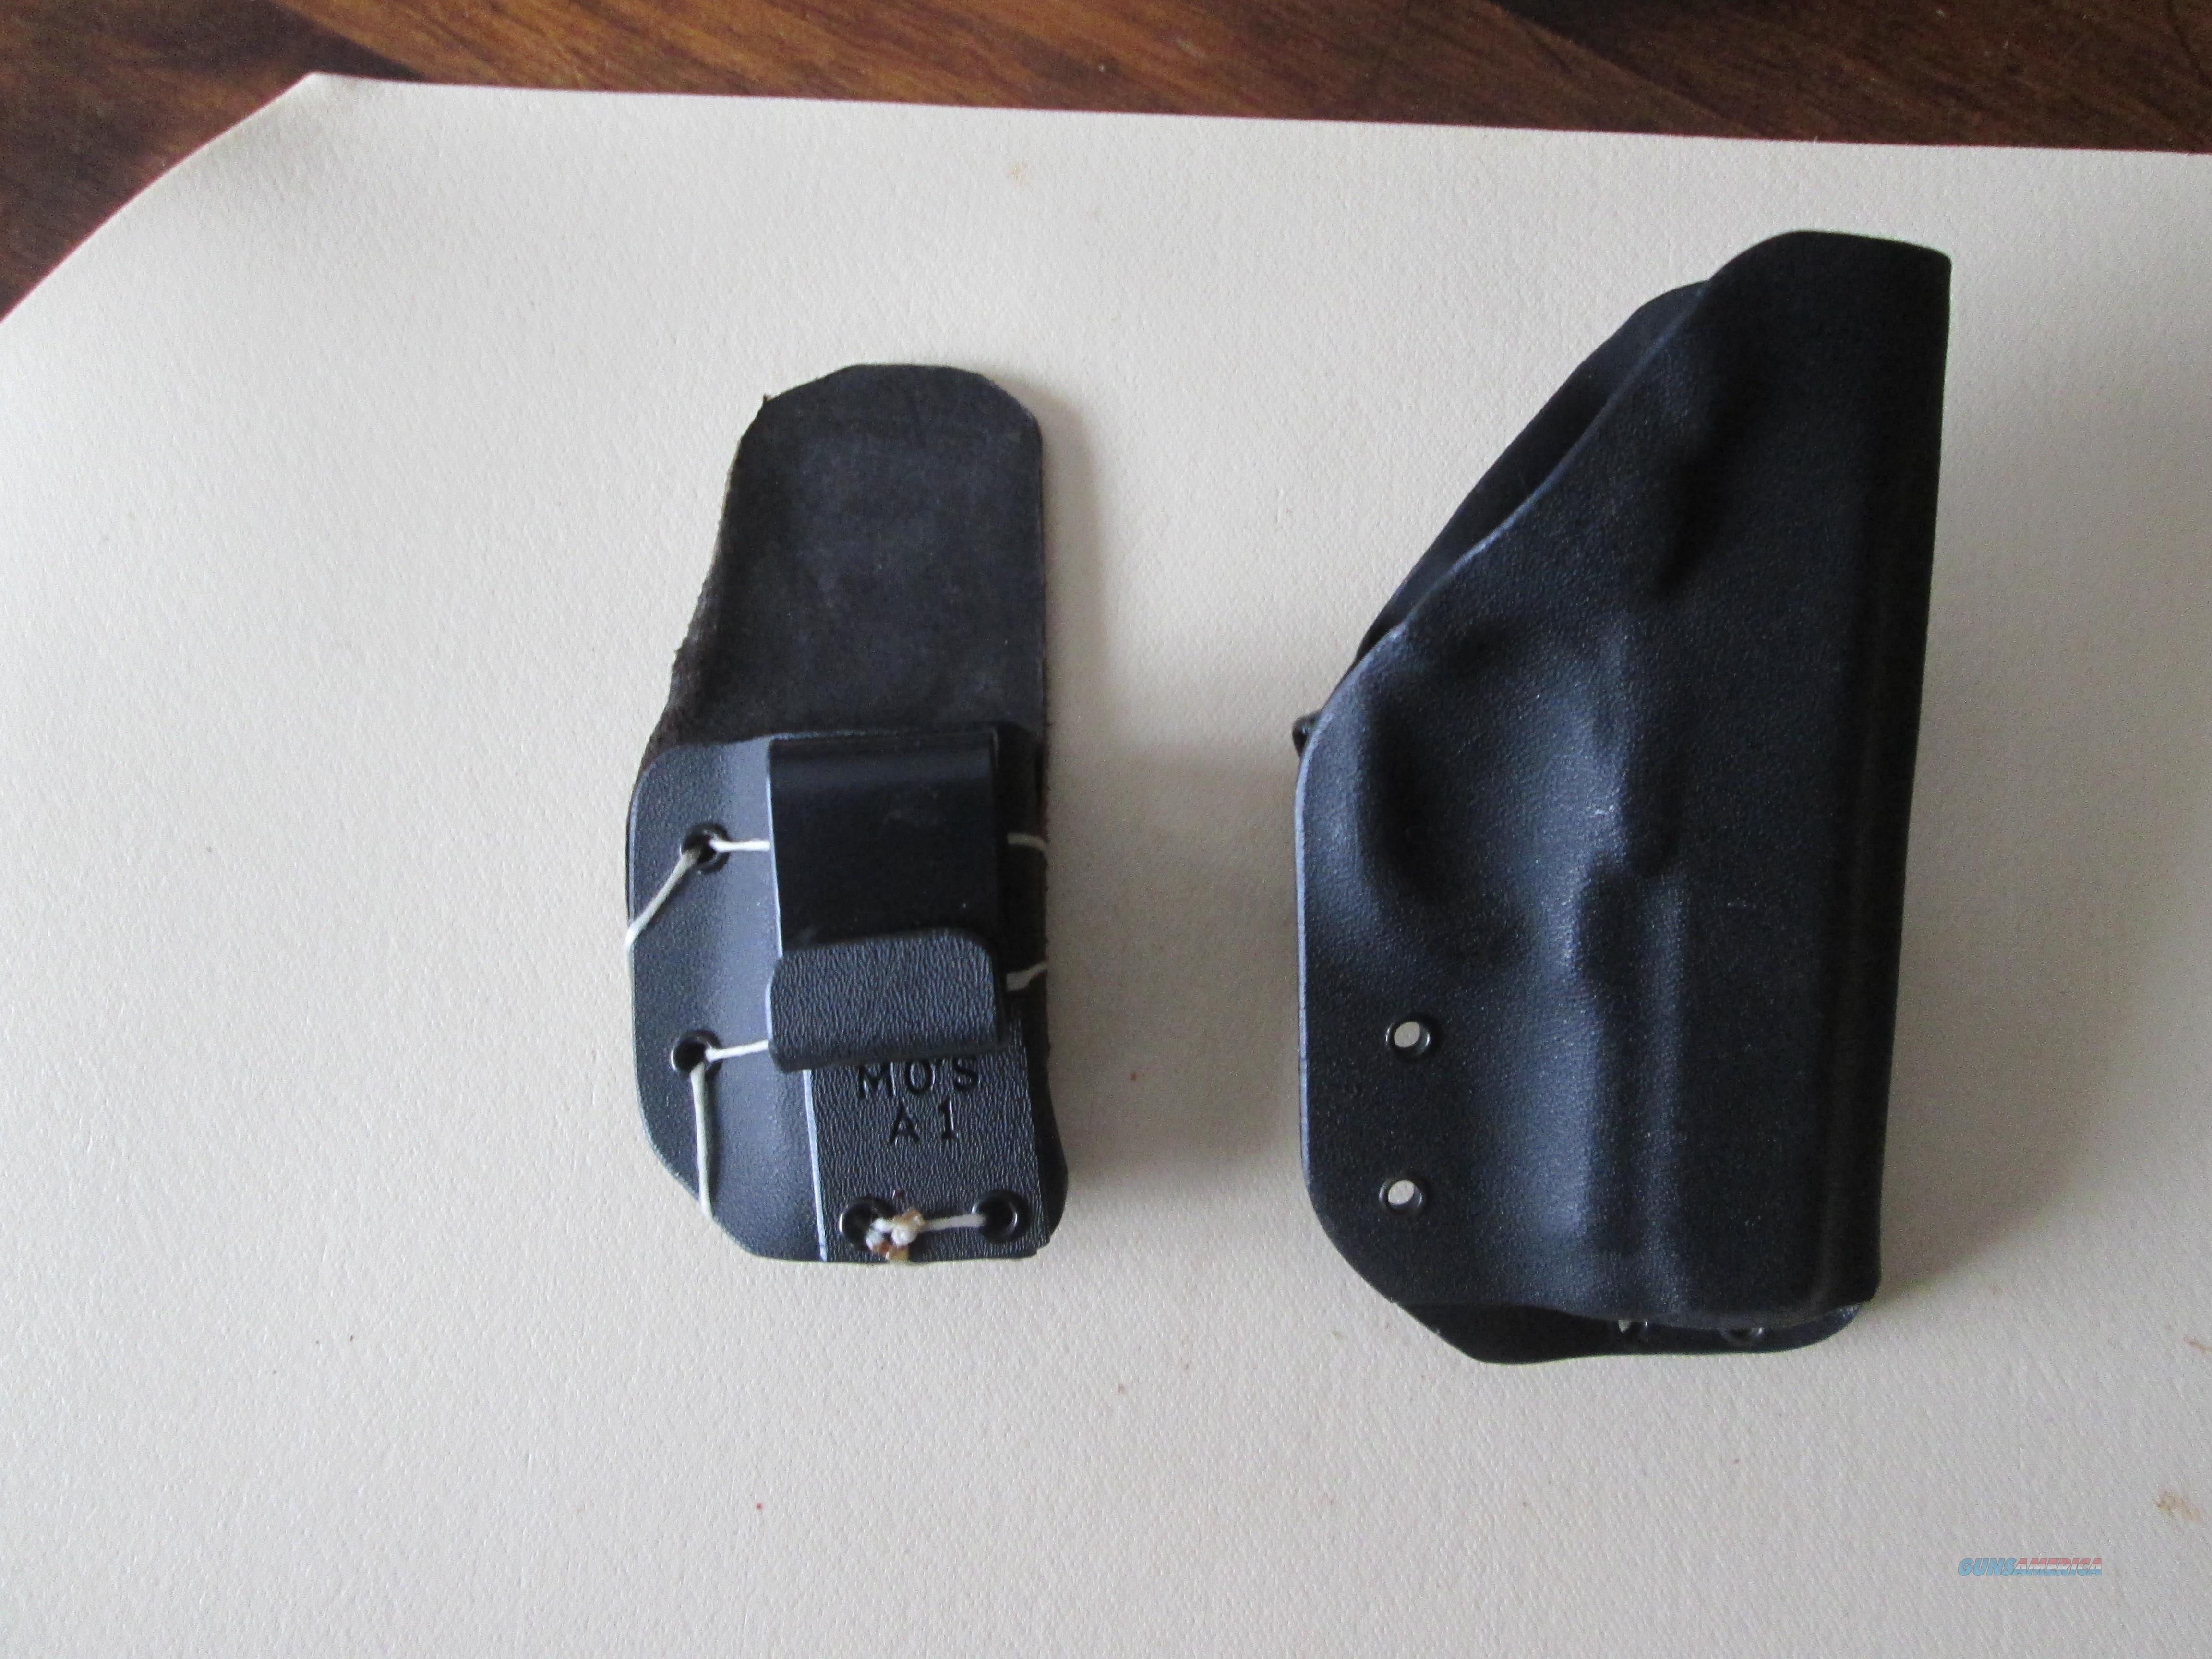 LH Kidex holster and Mag pouch for Compact 1911  Non-Guns > Holsters and Gunleather > Concealed Carry